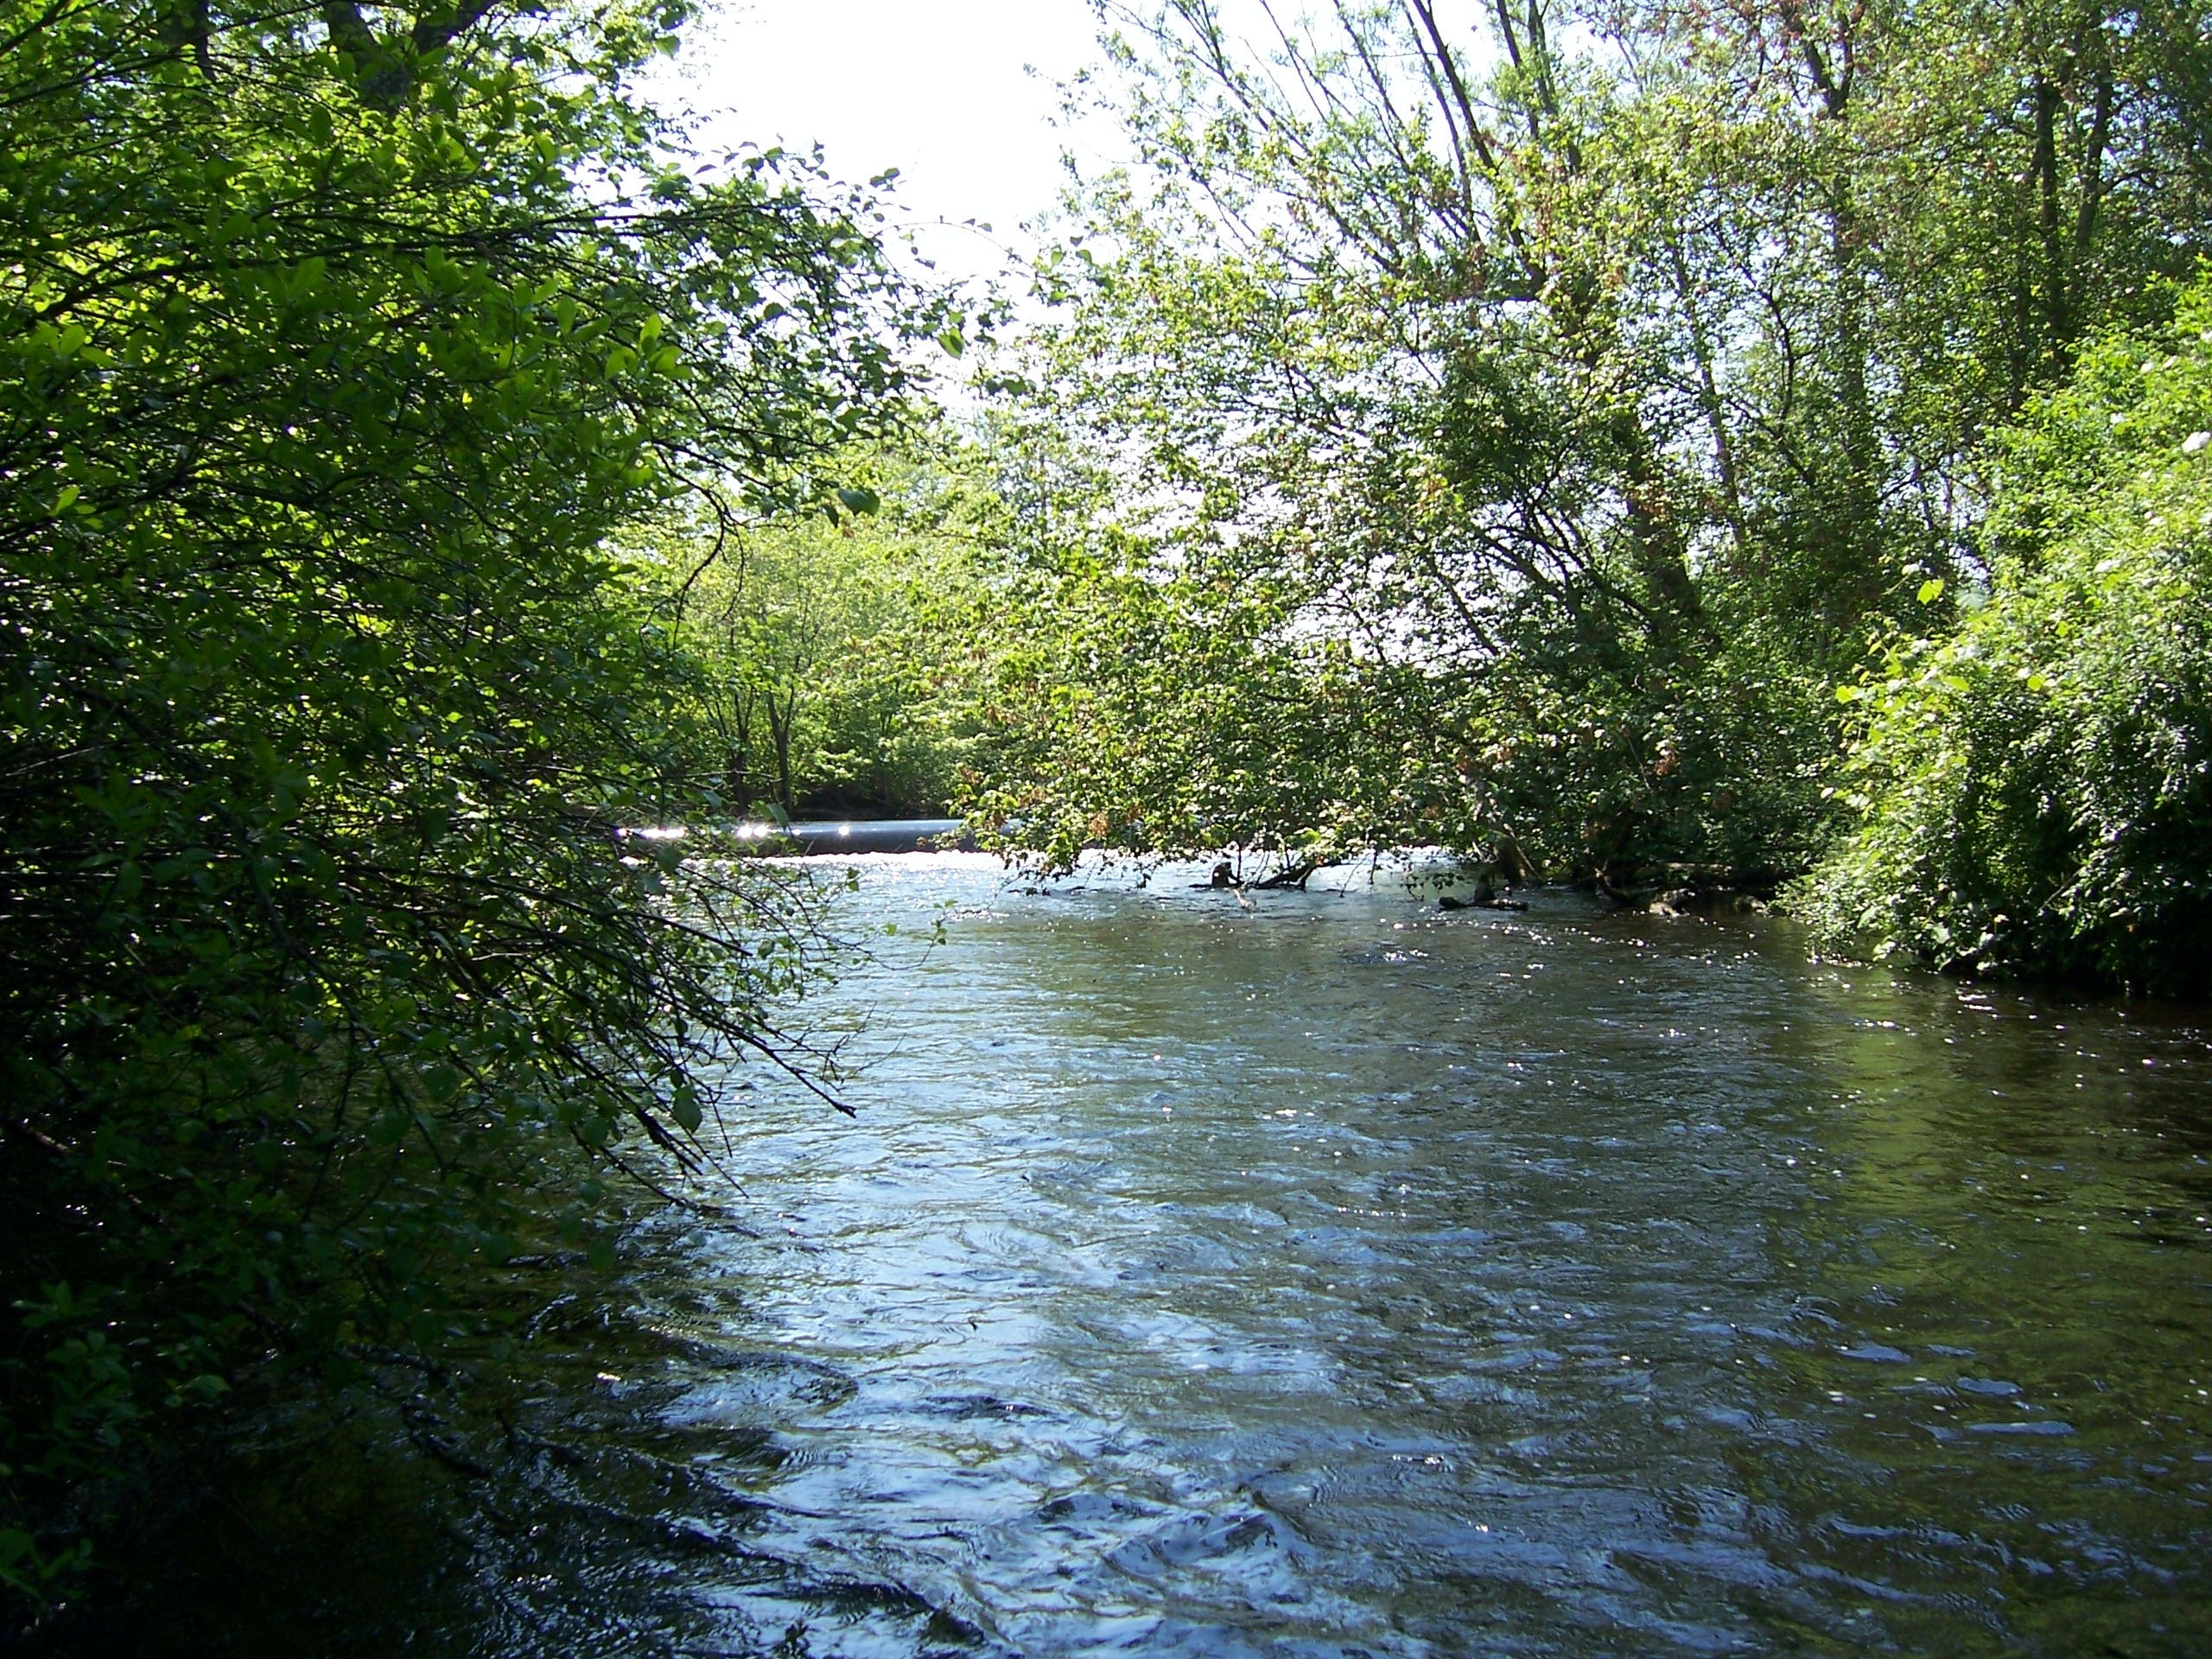 Wildwood State Park, NY   The Dyrt on knox farm state park map, peebles island state park map, belleplain state park map, hither hills state park map, wingfoot state park map, suwannee state park map, webster state park map, nj state park campgrounds map, mine kill state park map, letchworth state park map, cape may point state park map, long branch state park map, arrow rock state park map, fairview state park map, valley of fire state park campground map, indian creek state park map, ocala state park map, dunes state park map, yellow banks state park map, orient beach state park map,